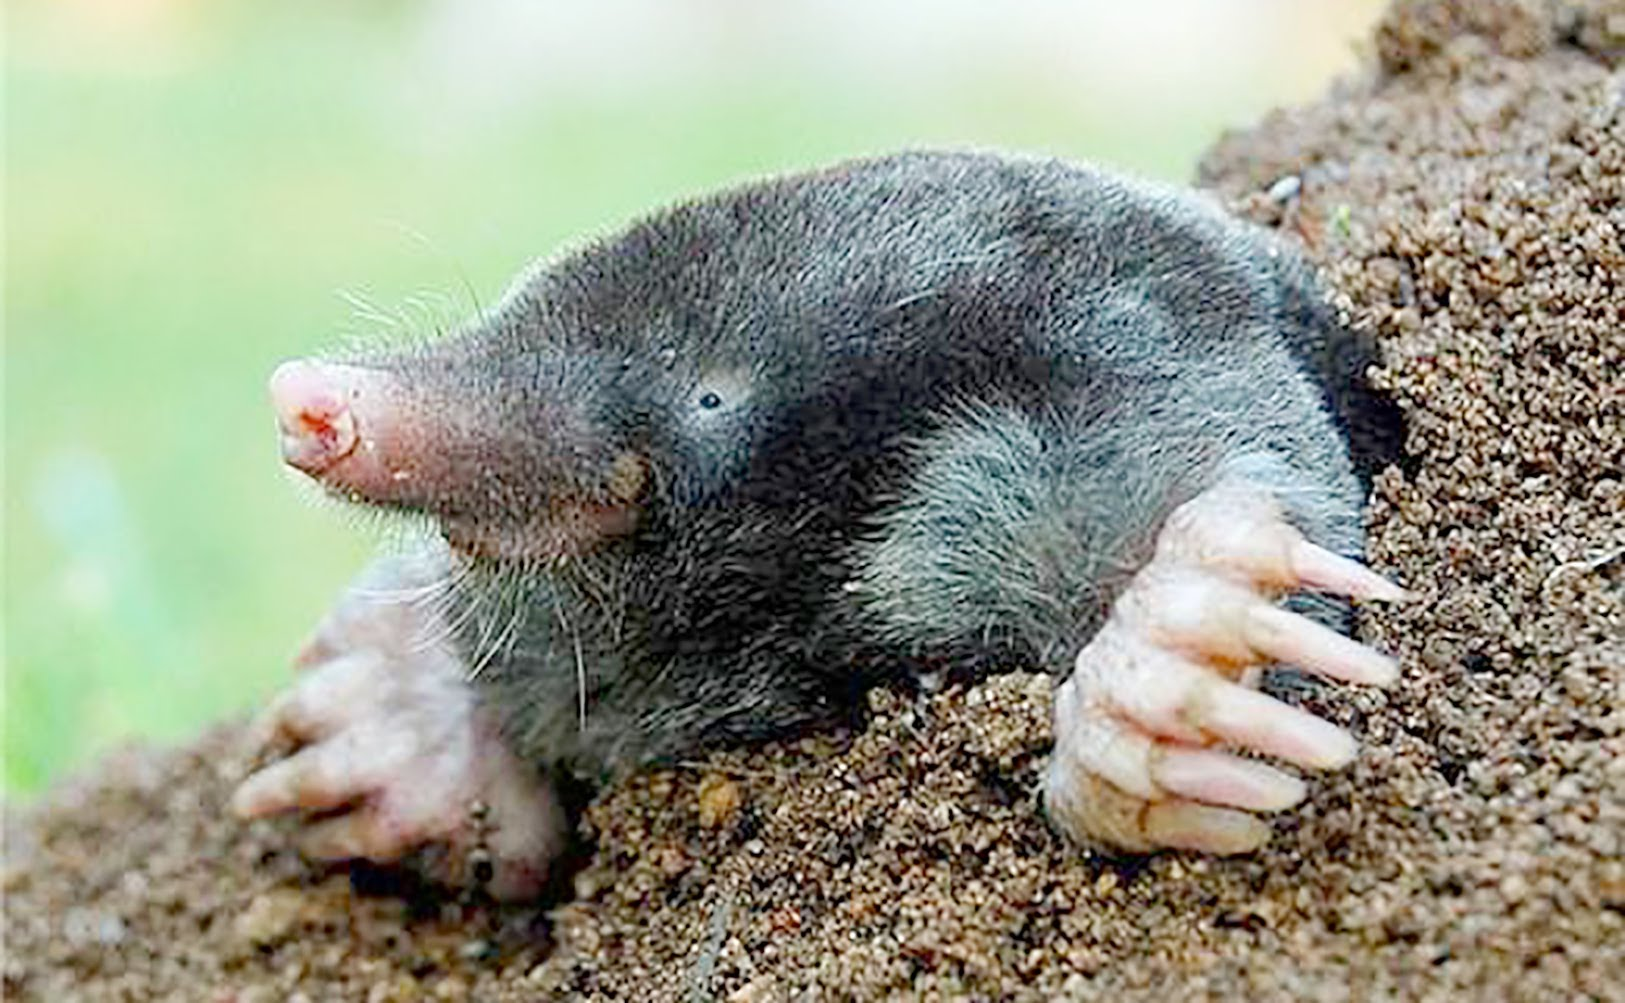 Mole widescreen for desktop